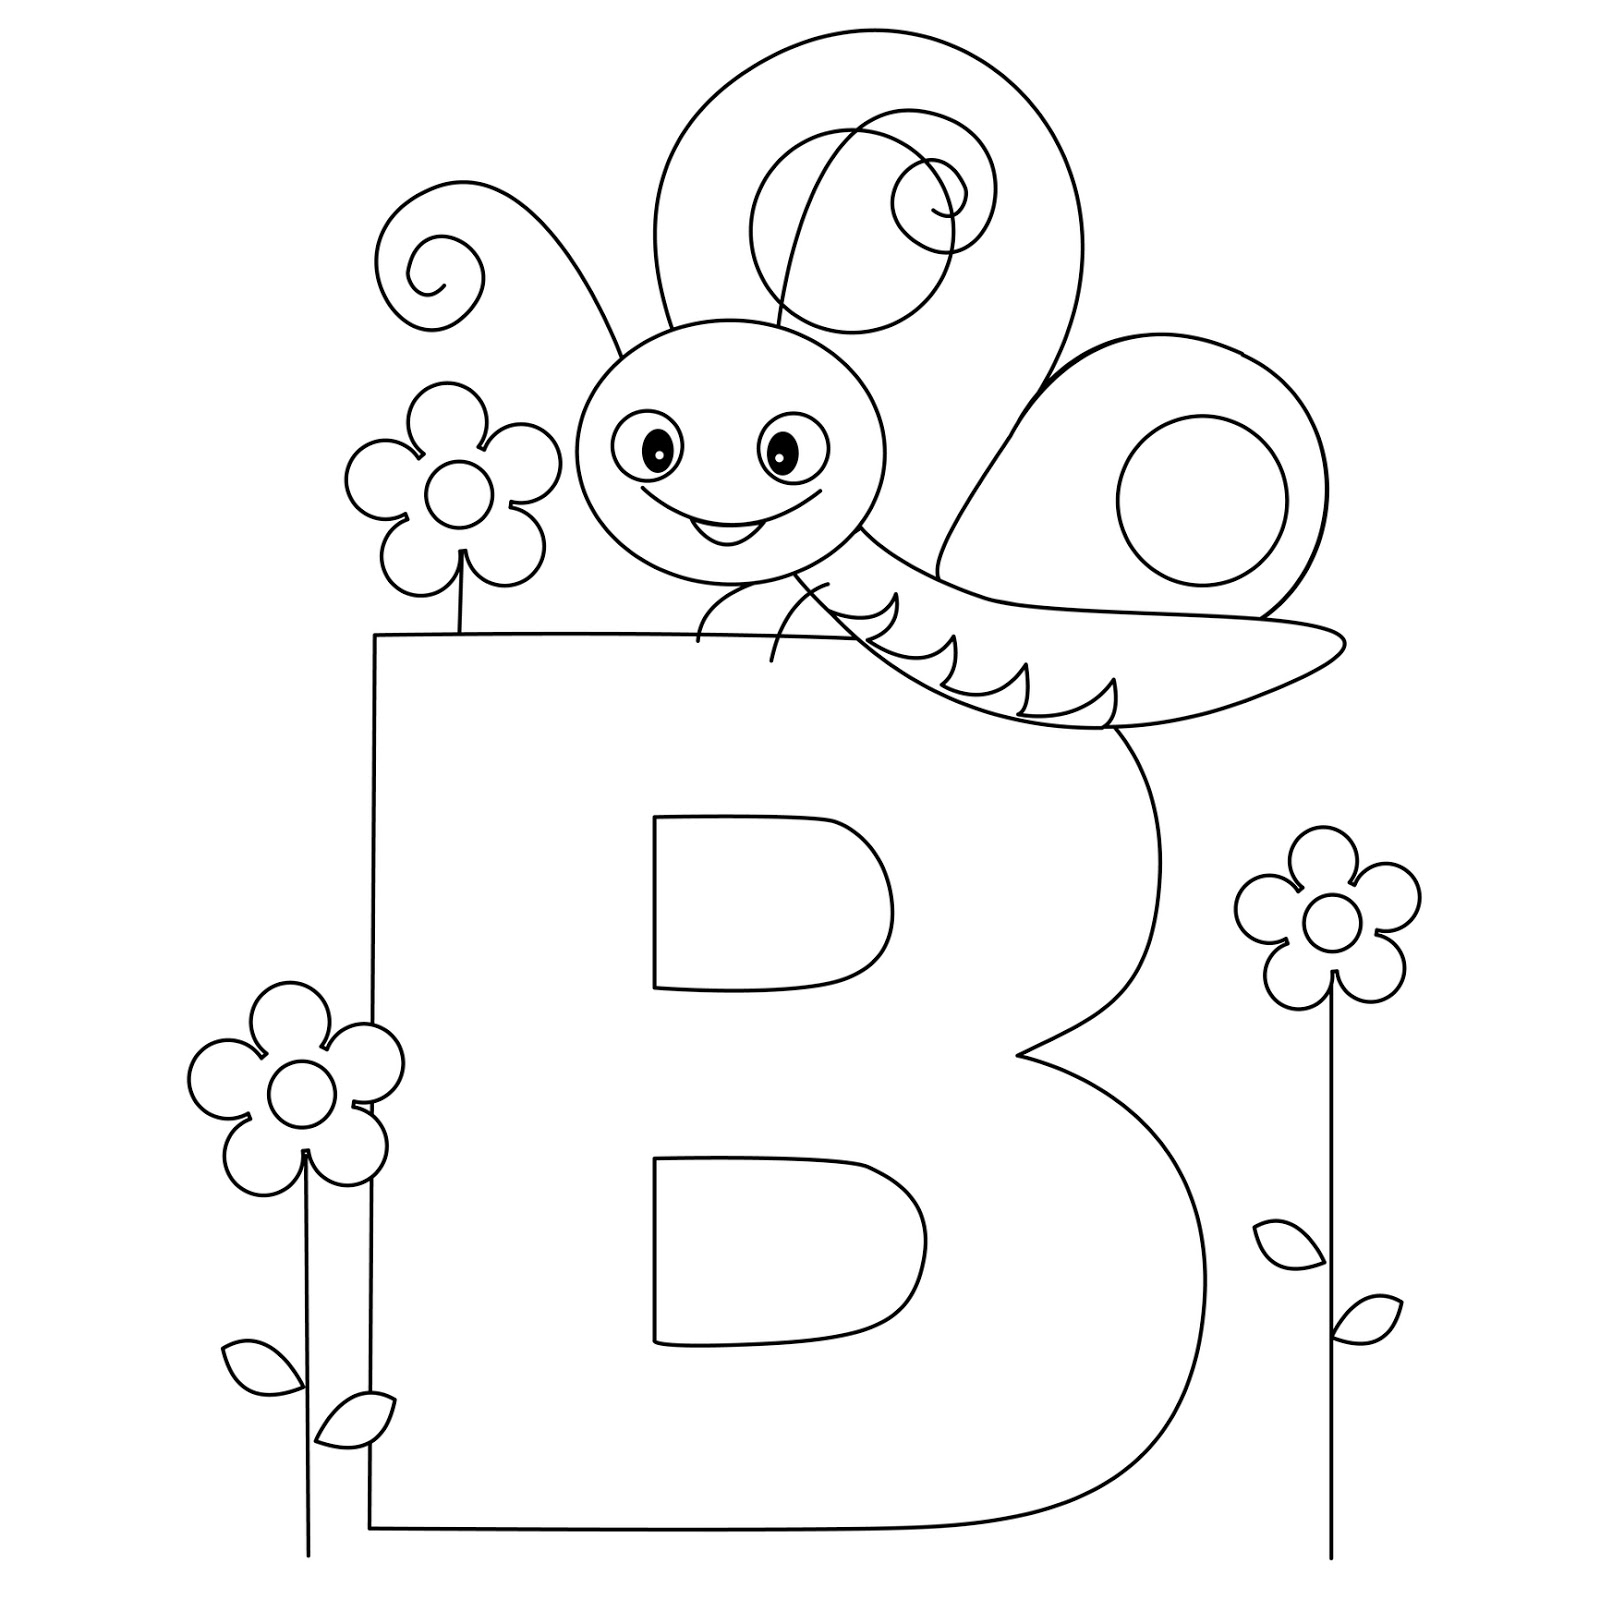 Letter B Coloring Pages For Preschoolers : Animal alphabet letter b coloring butterfly